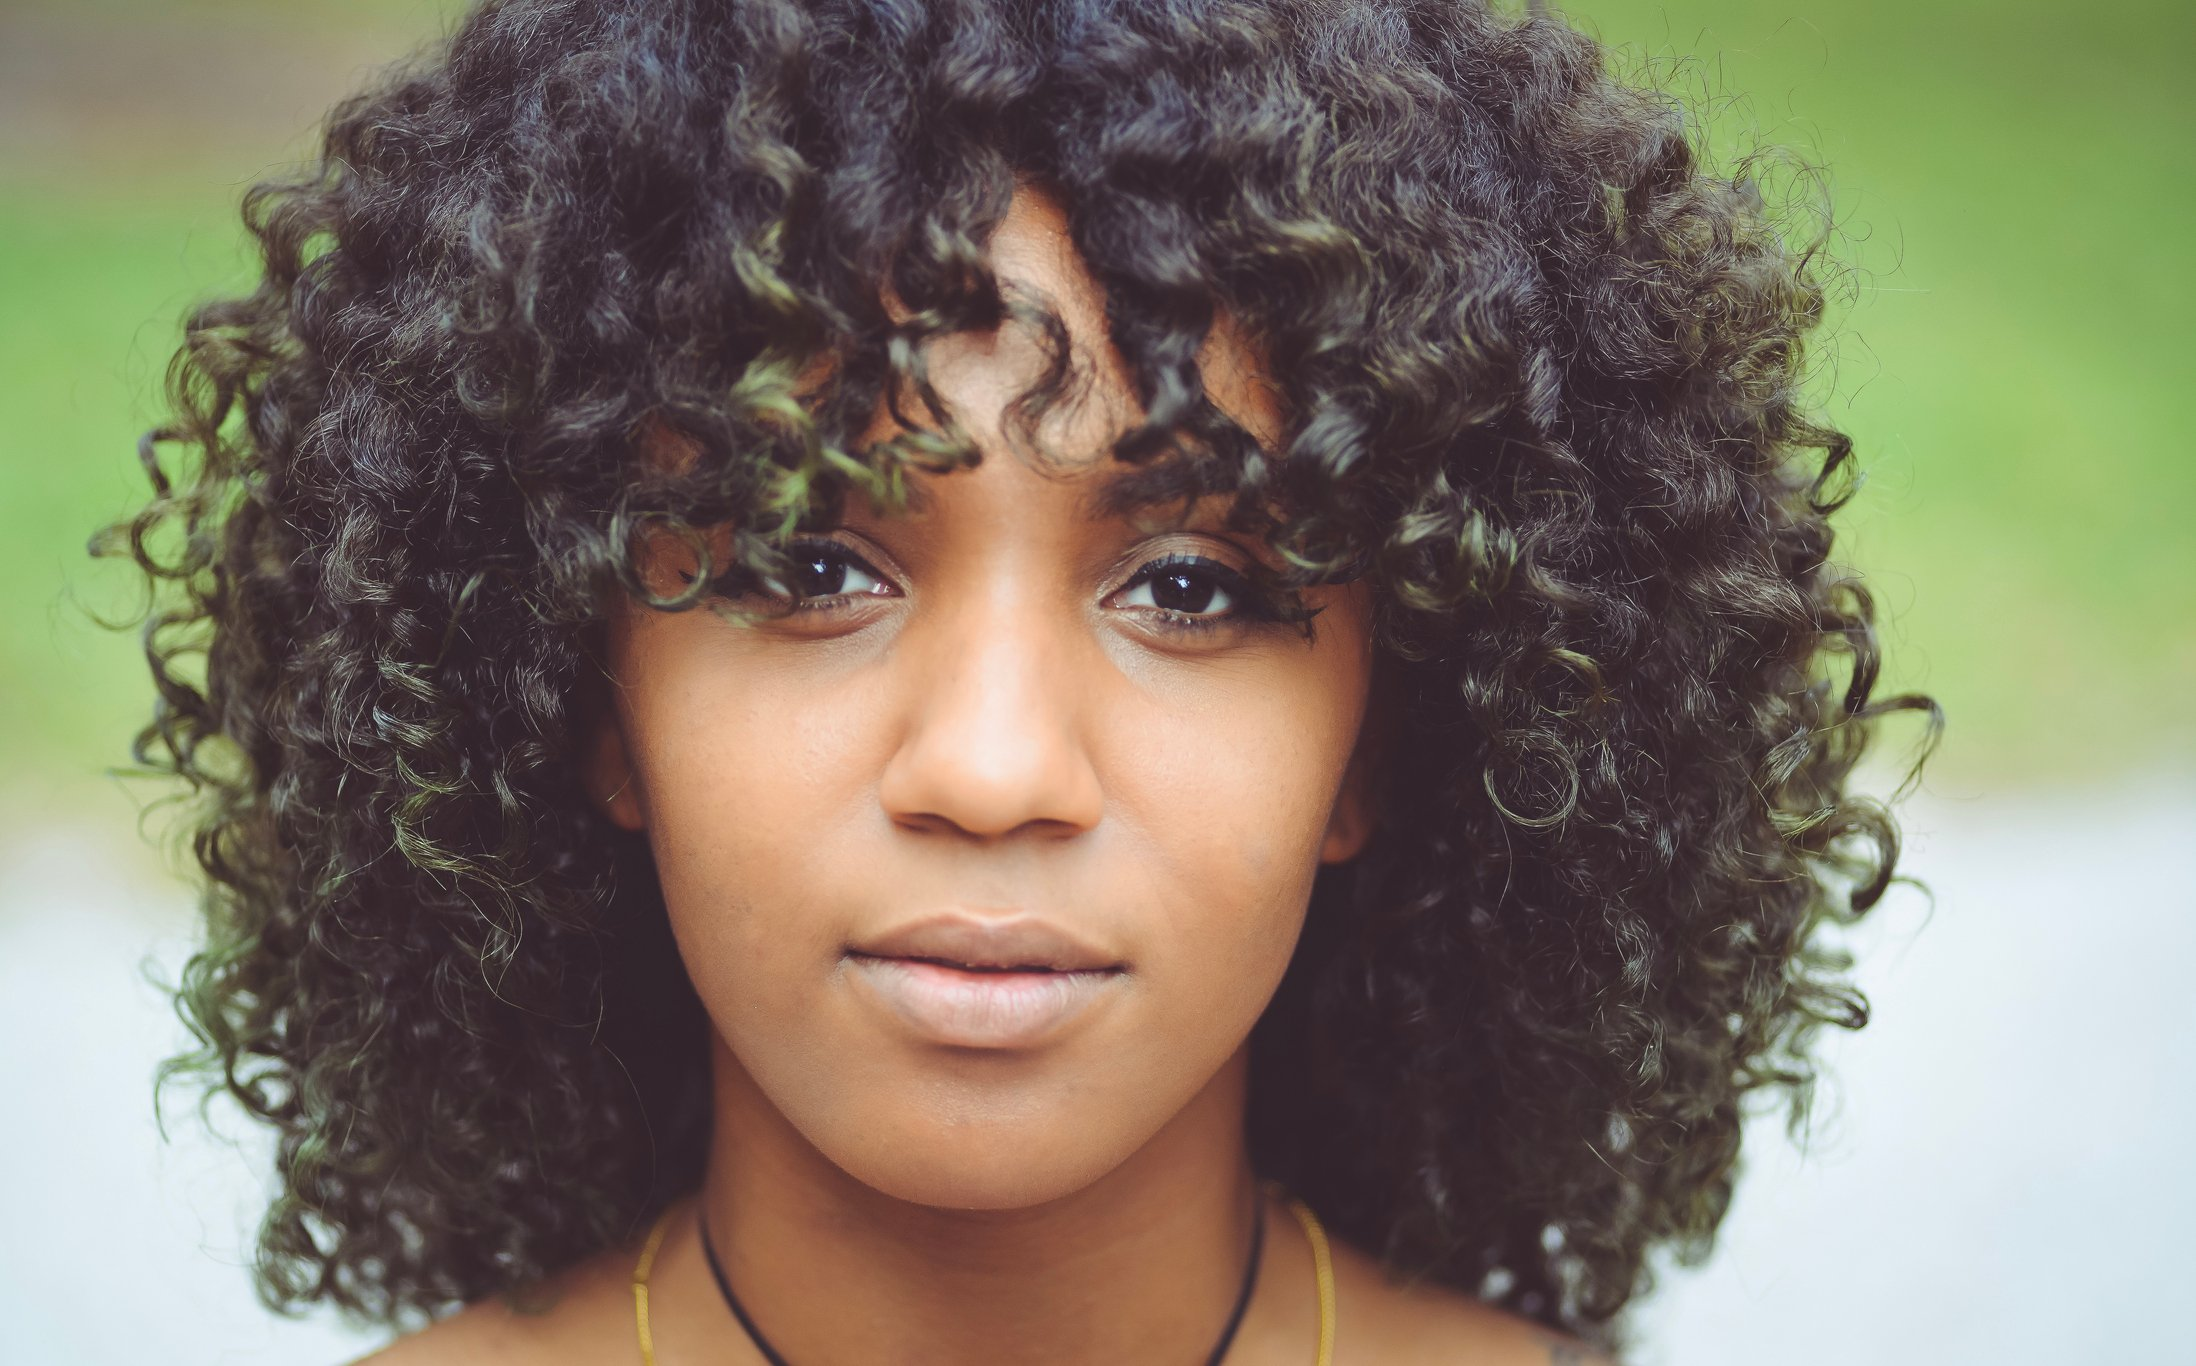 Close up of a young African American woman looking at the camera. Outdoors. Natural curly hair.